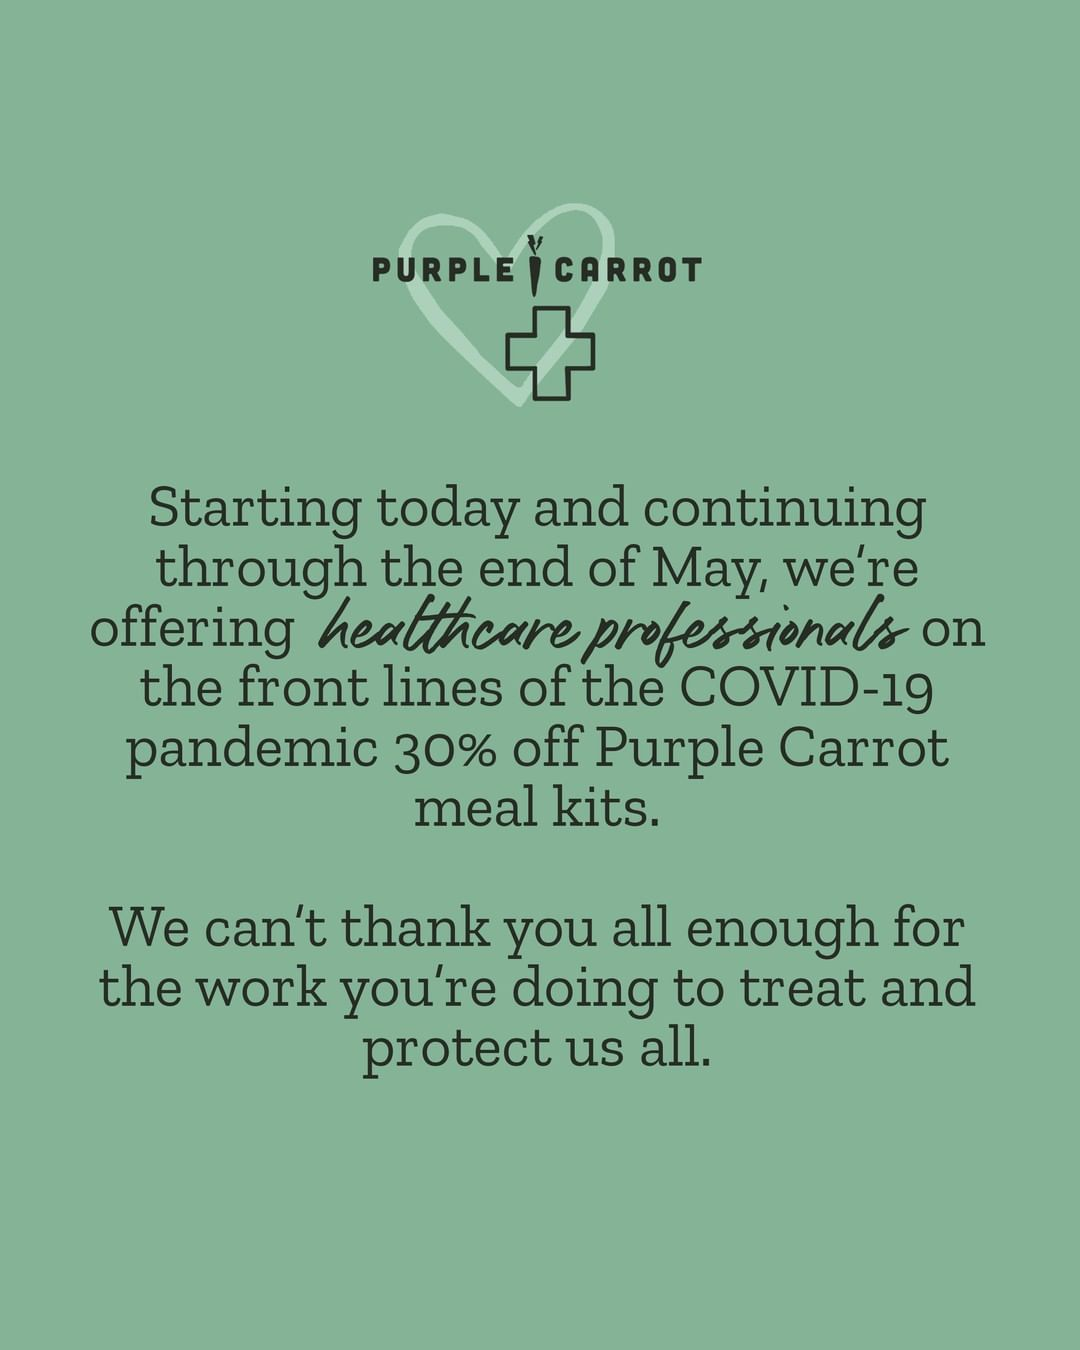 Purple Carrot's Instagram post announcing its healthcare worker discount.